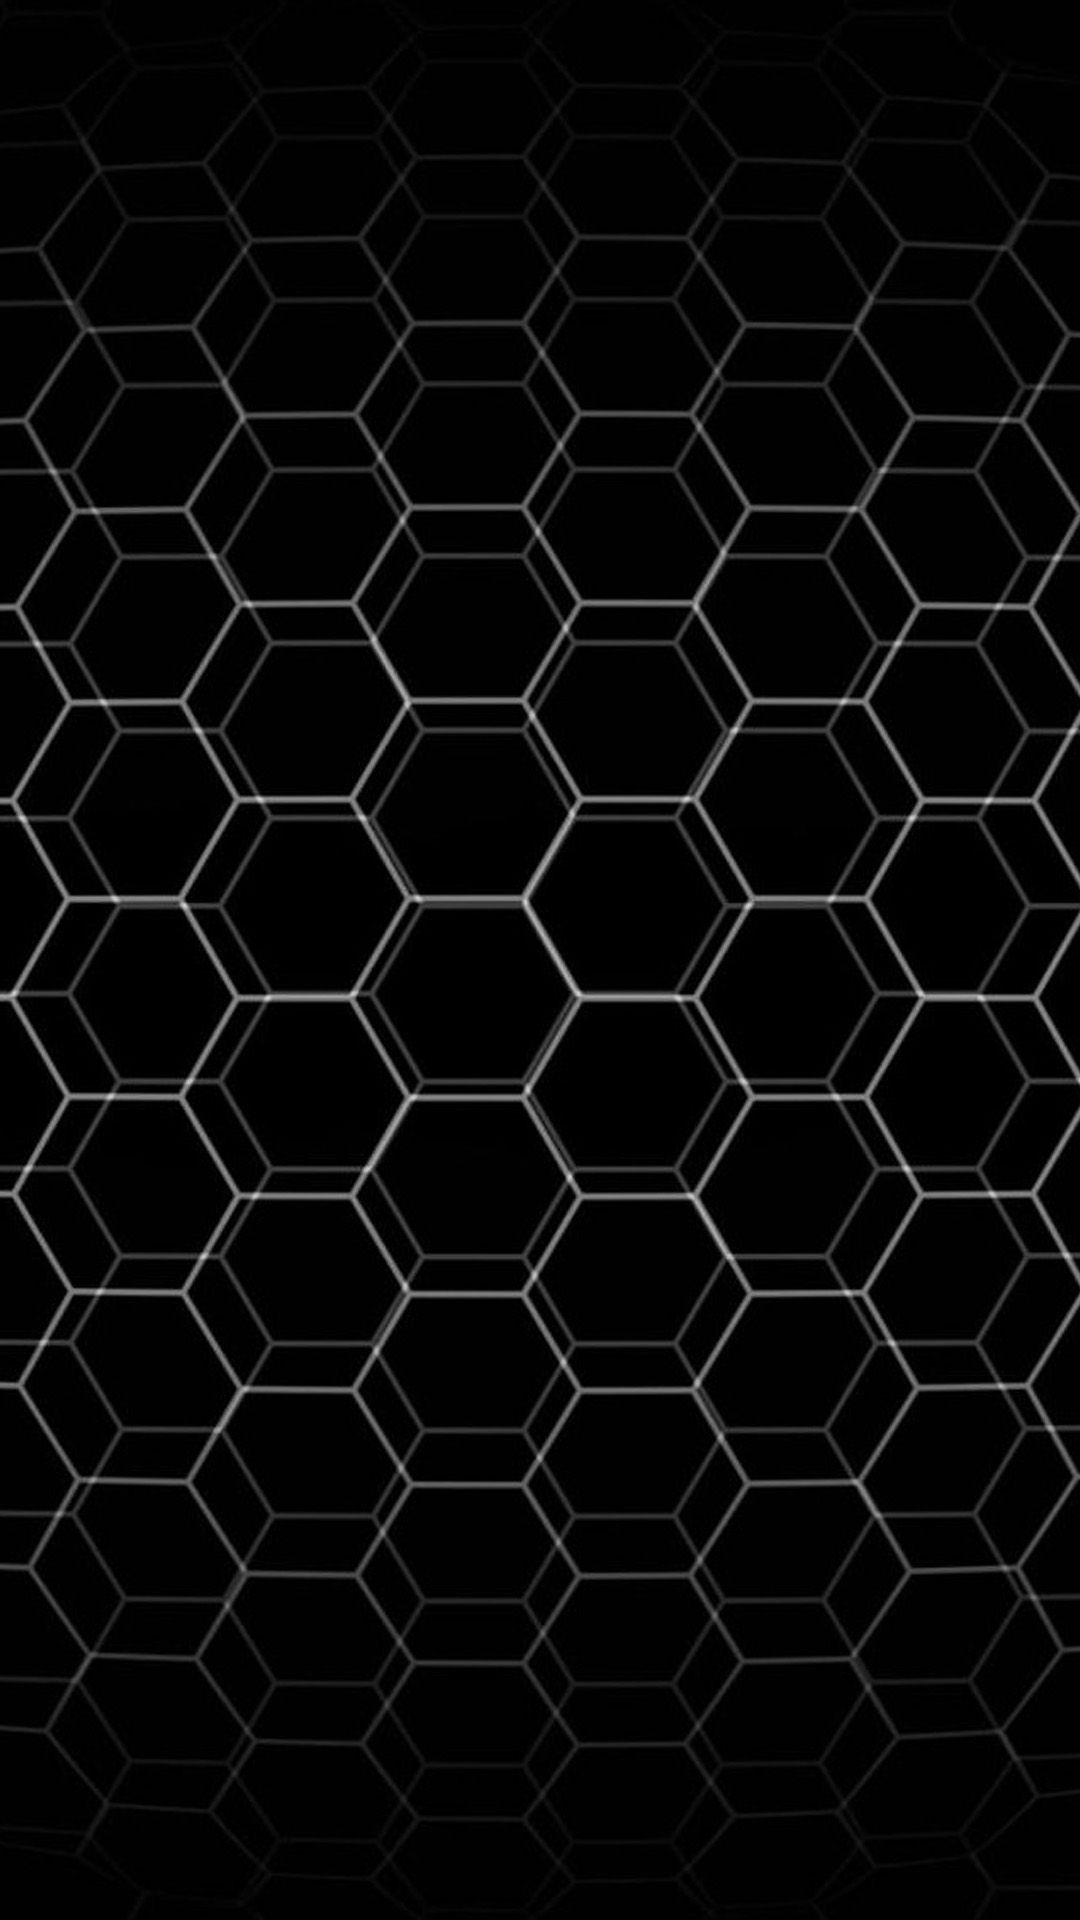 Https All Images Net Wallpaper Iphone Abstract Hd 317 Wallpaper Iphone Abstract Hd Abstract Iphone Wallpaper Iphone 6 Wallpaper Backgrounds Black Wallpaper